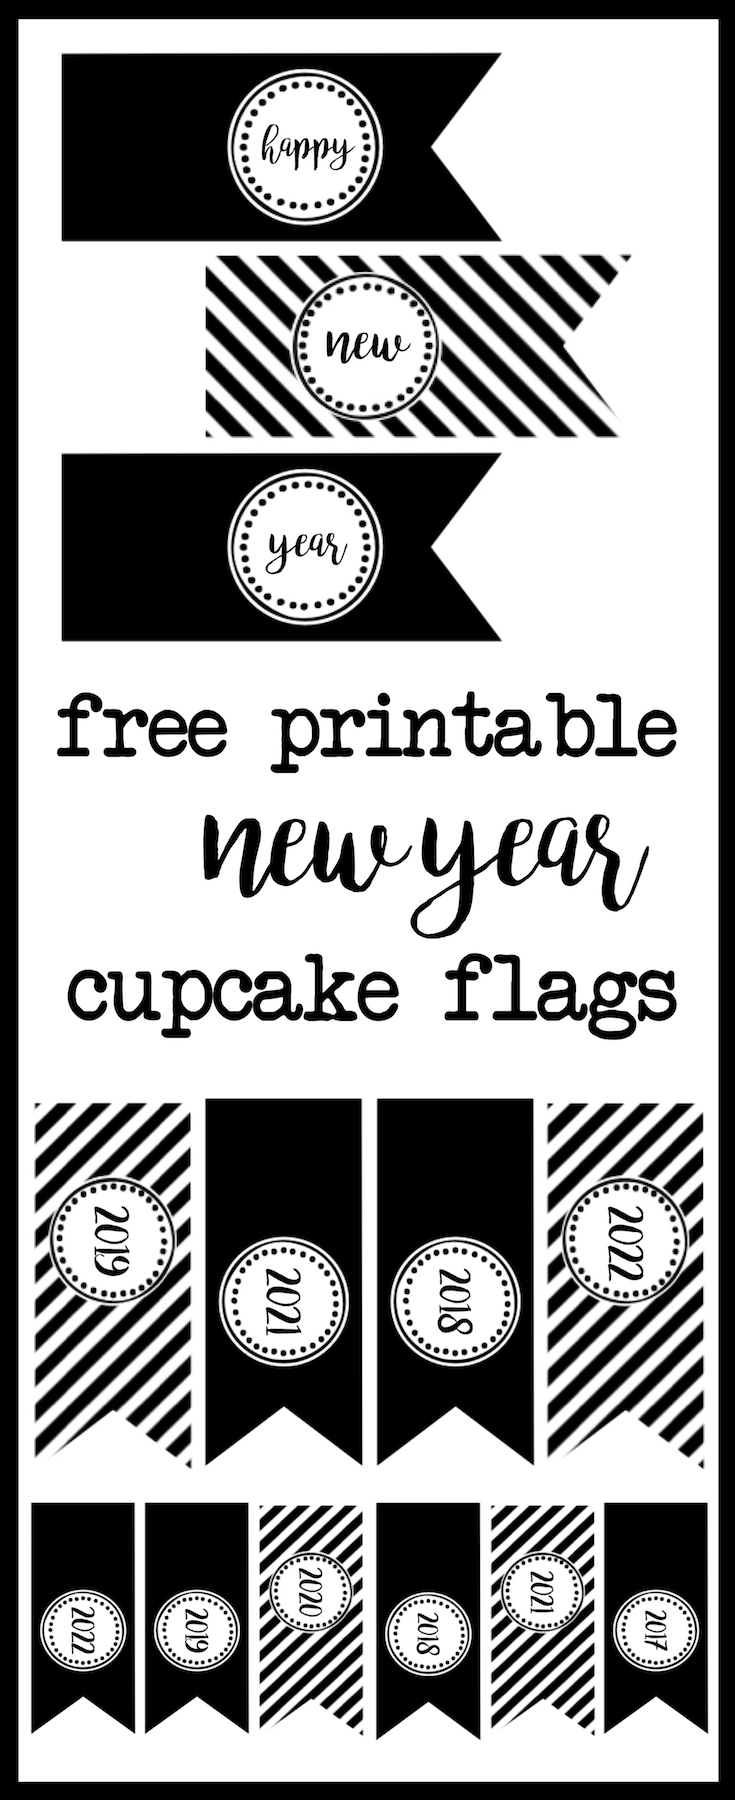 Happy New Year Cupcake Toppers Free Printable. Decorate for your New Year Party with these free cupcake toppers with years 2017, 2018, 2019, 2020, 2021, 2022.